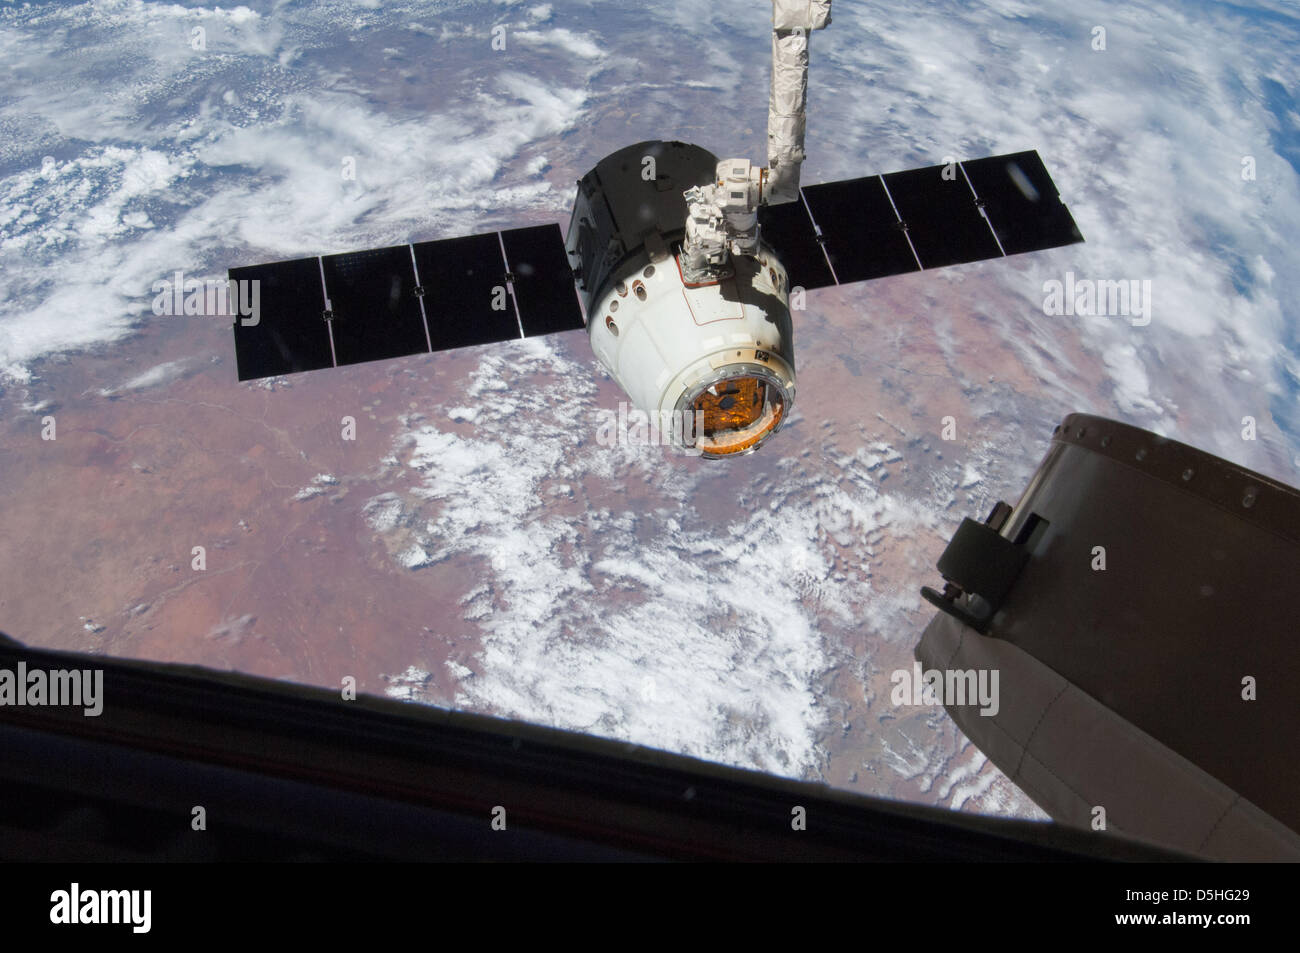 The SpaceX Dragon spacecraft is released after a three-week visit to theInternational Space Station March 26, 2013 - Stock Image